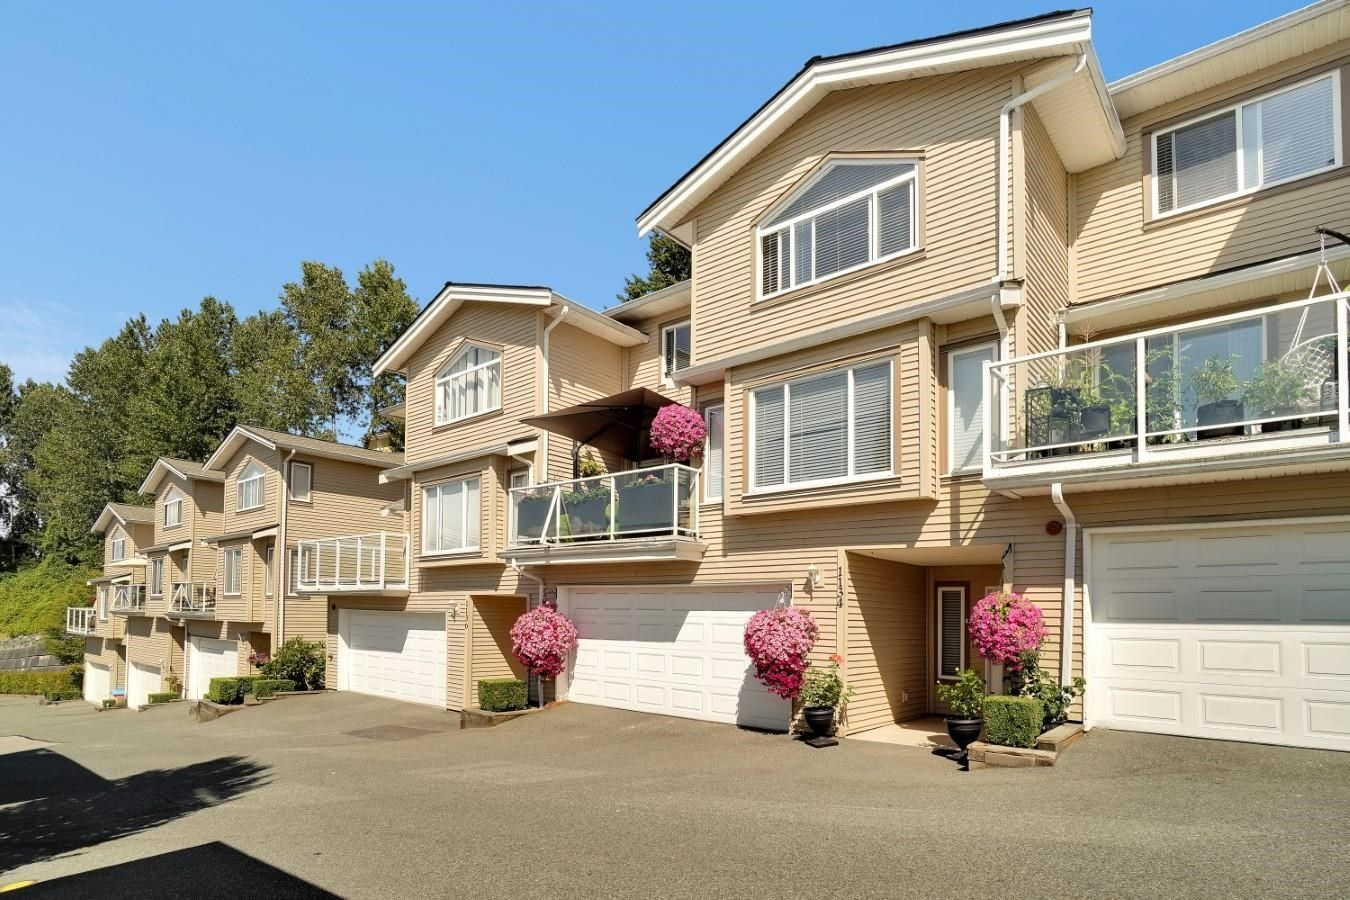 Main Photo: 1134 BENNET Drive in Port Coquitlam: Citadel PQ Townhouse for sale : MLS®# R2603845